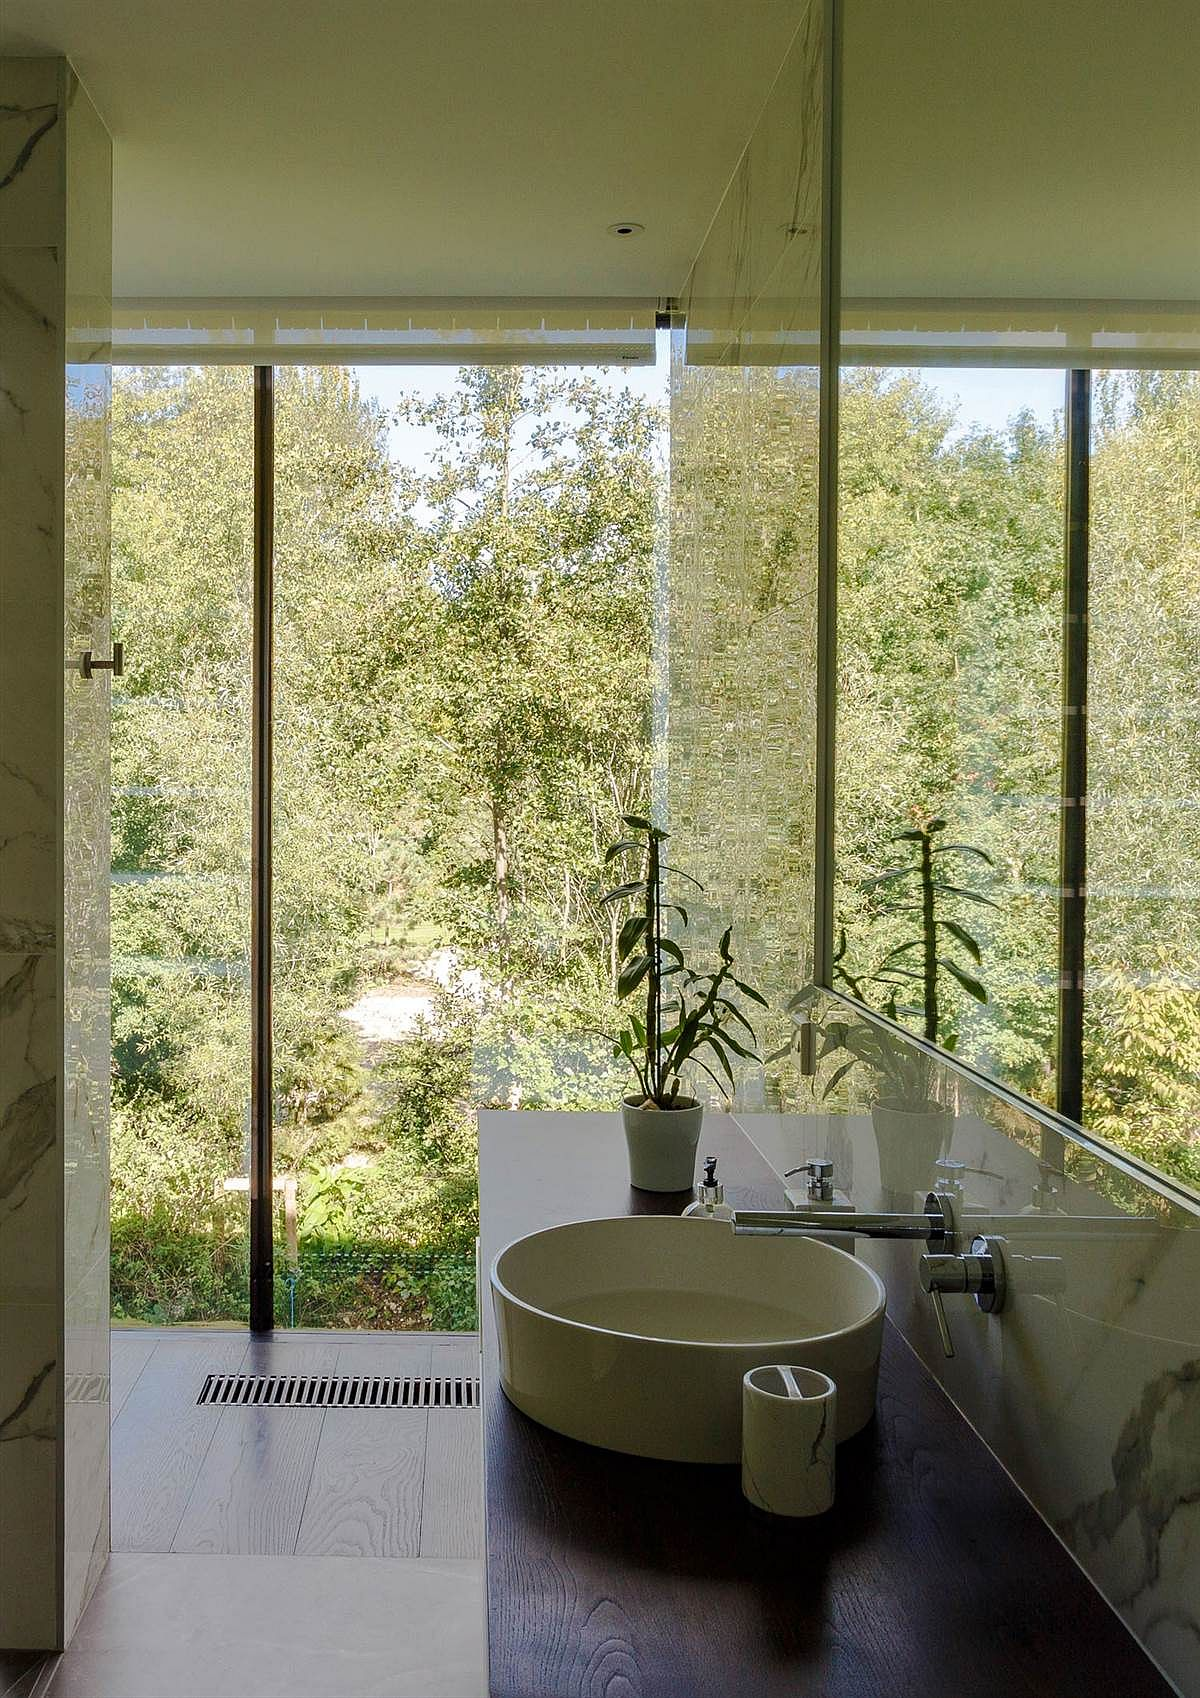 Even the bathroom opens up towards the landscape outside